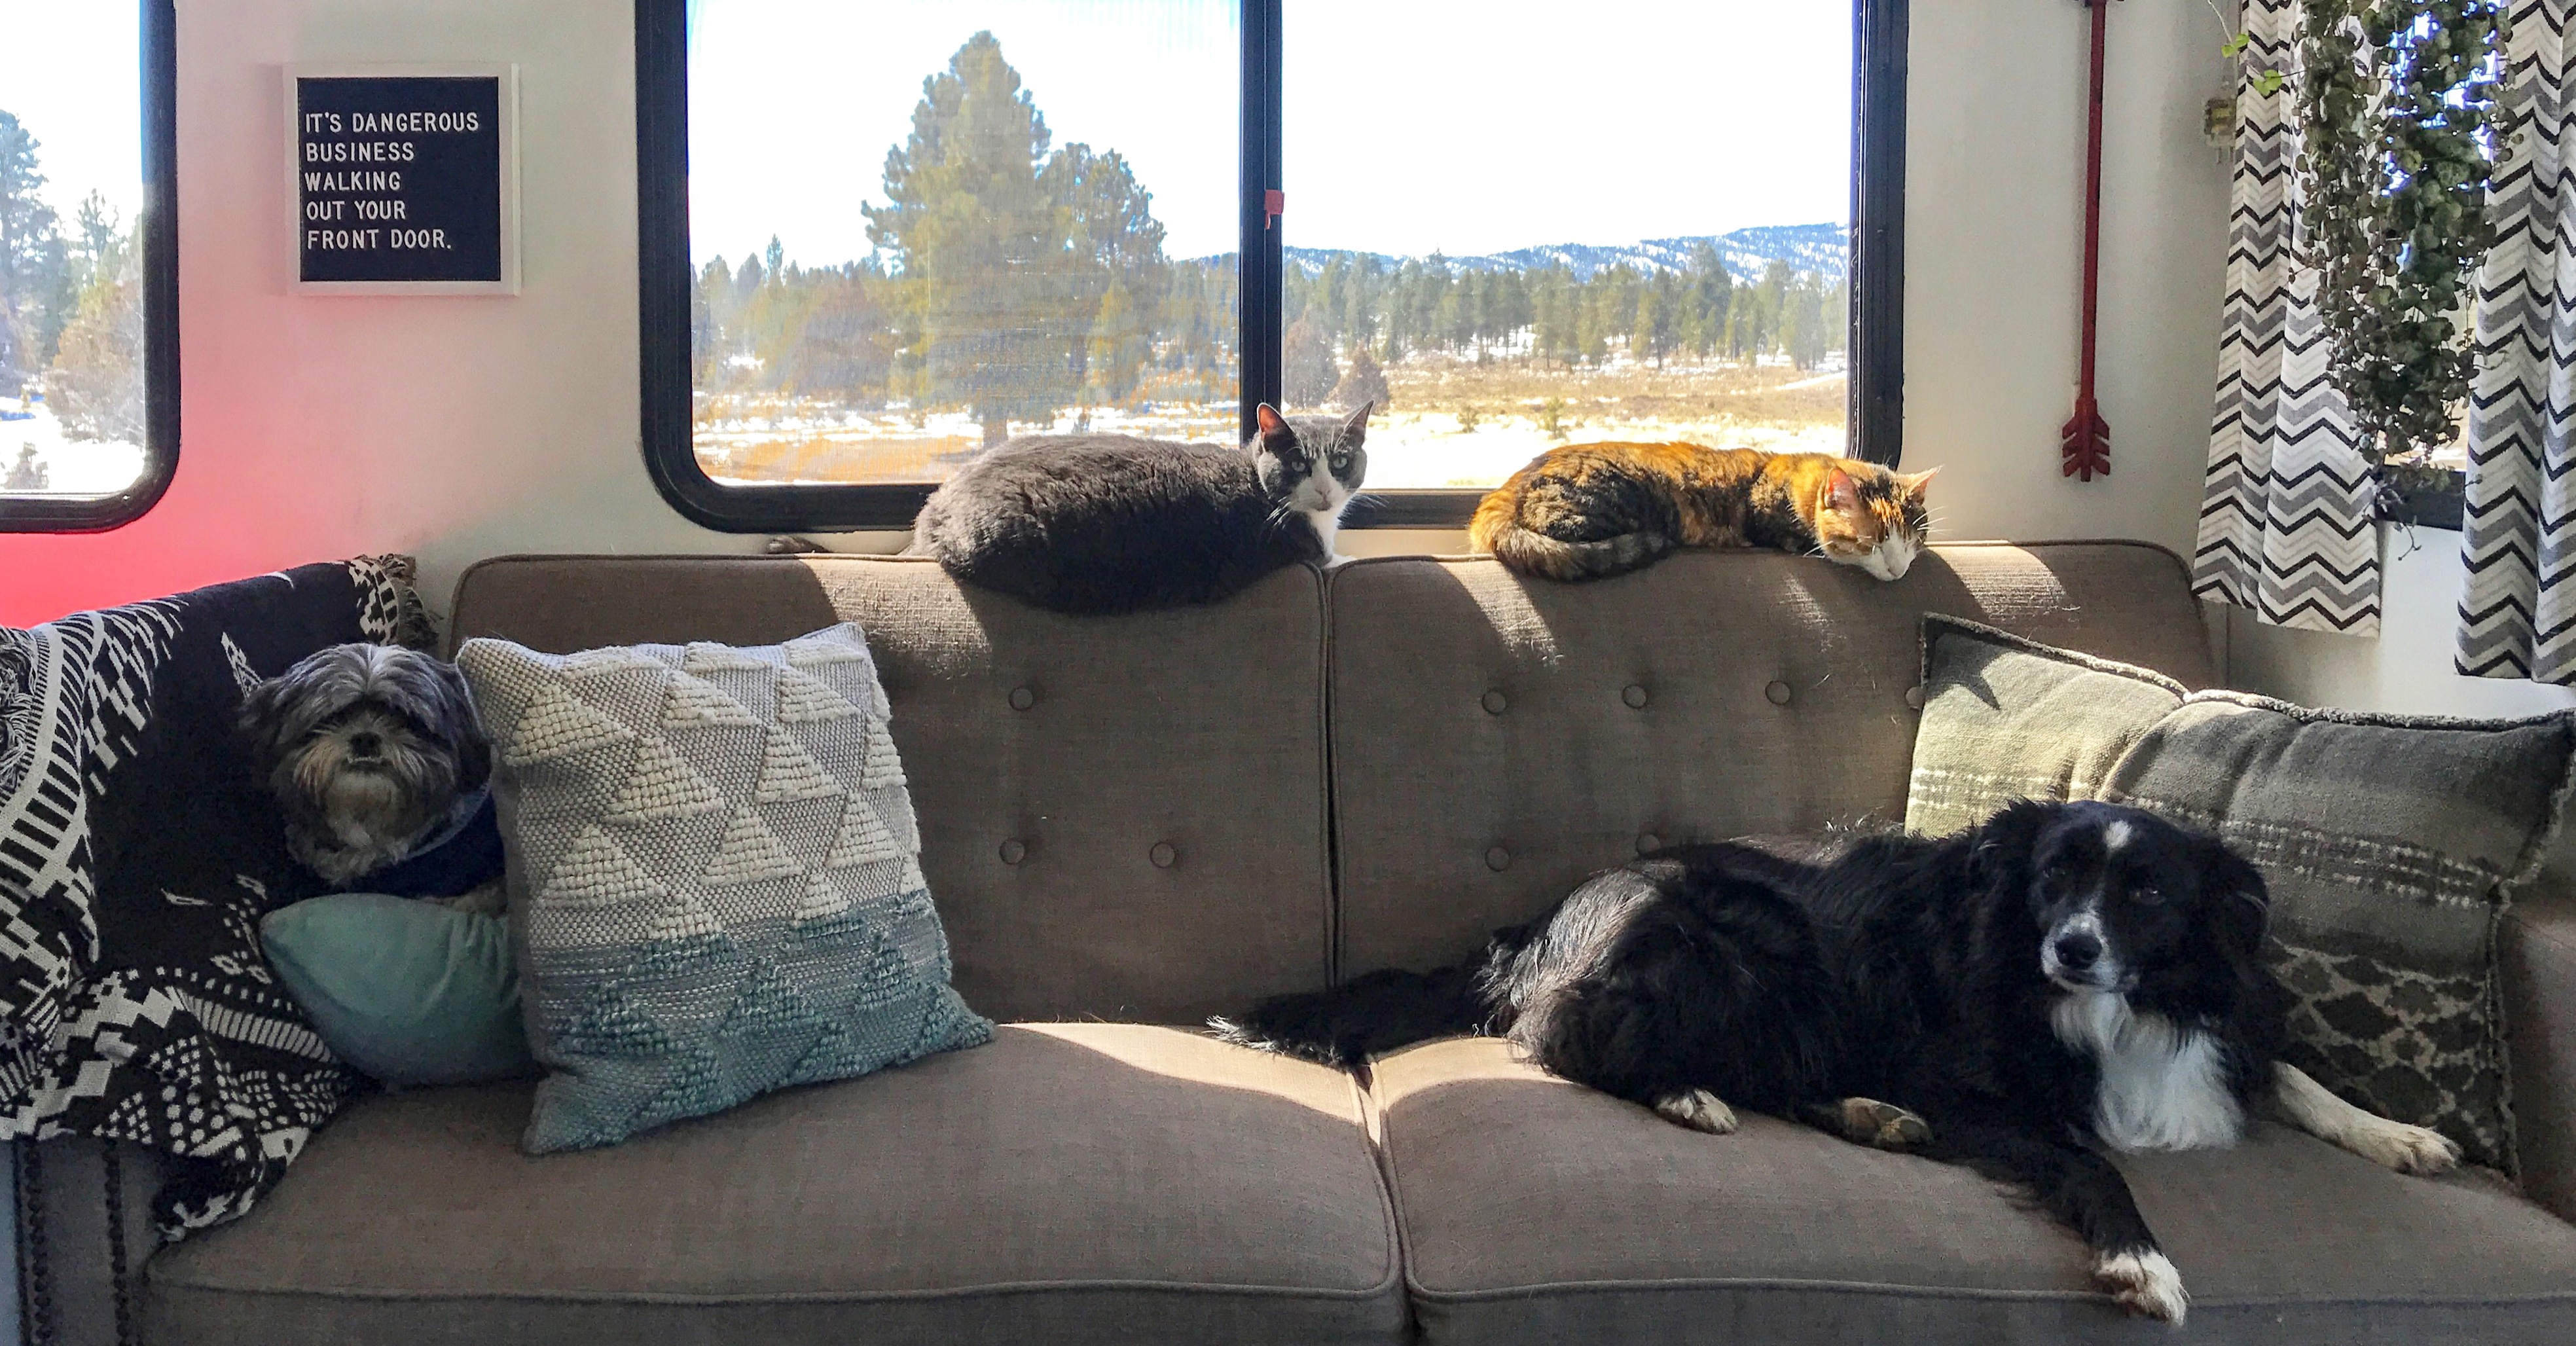 7 Questions to Ask When RVing With Pets